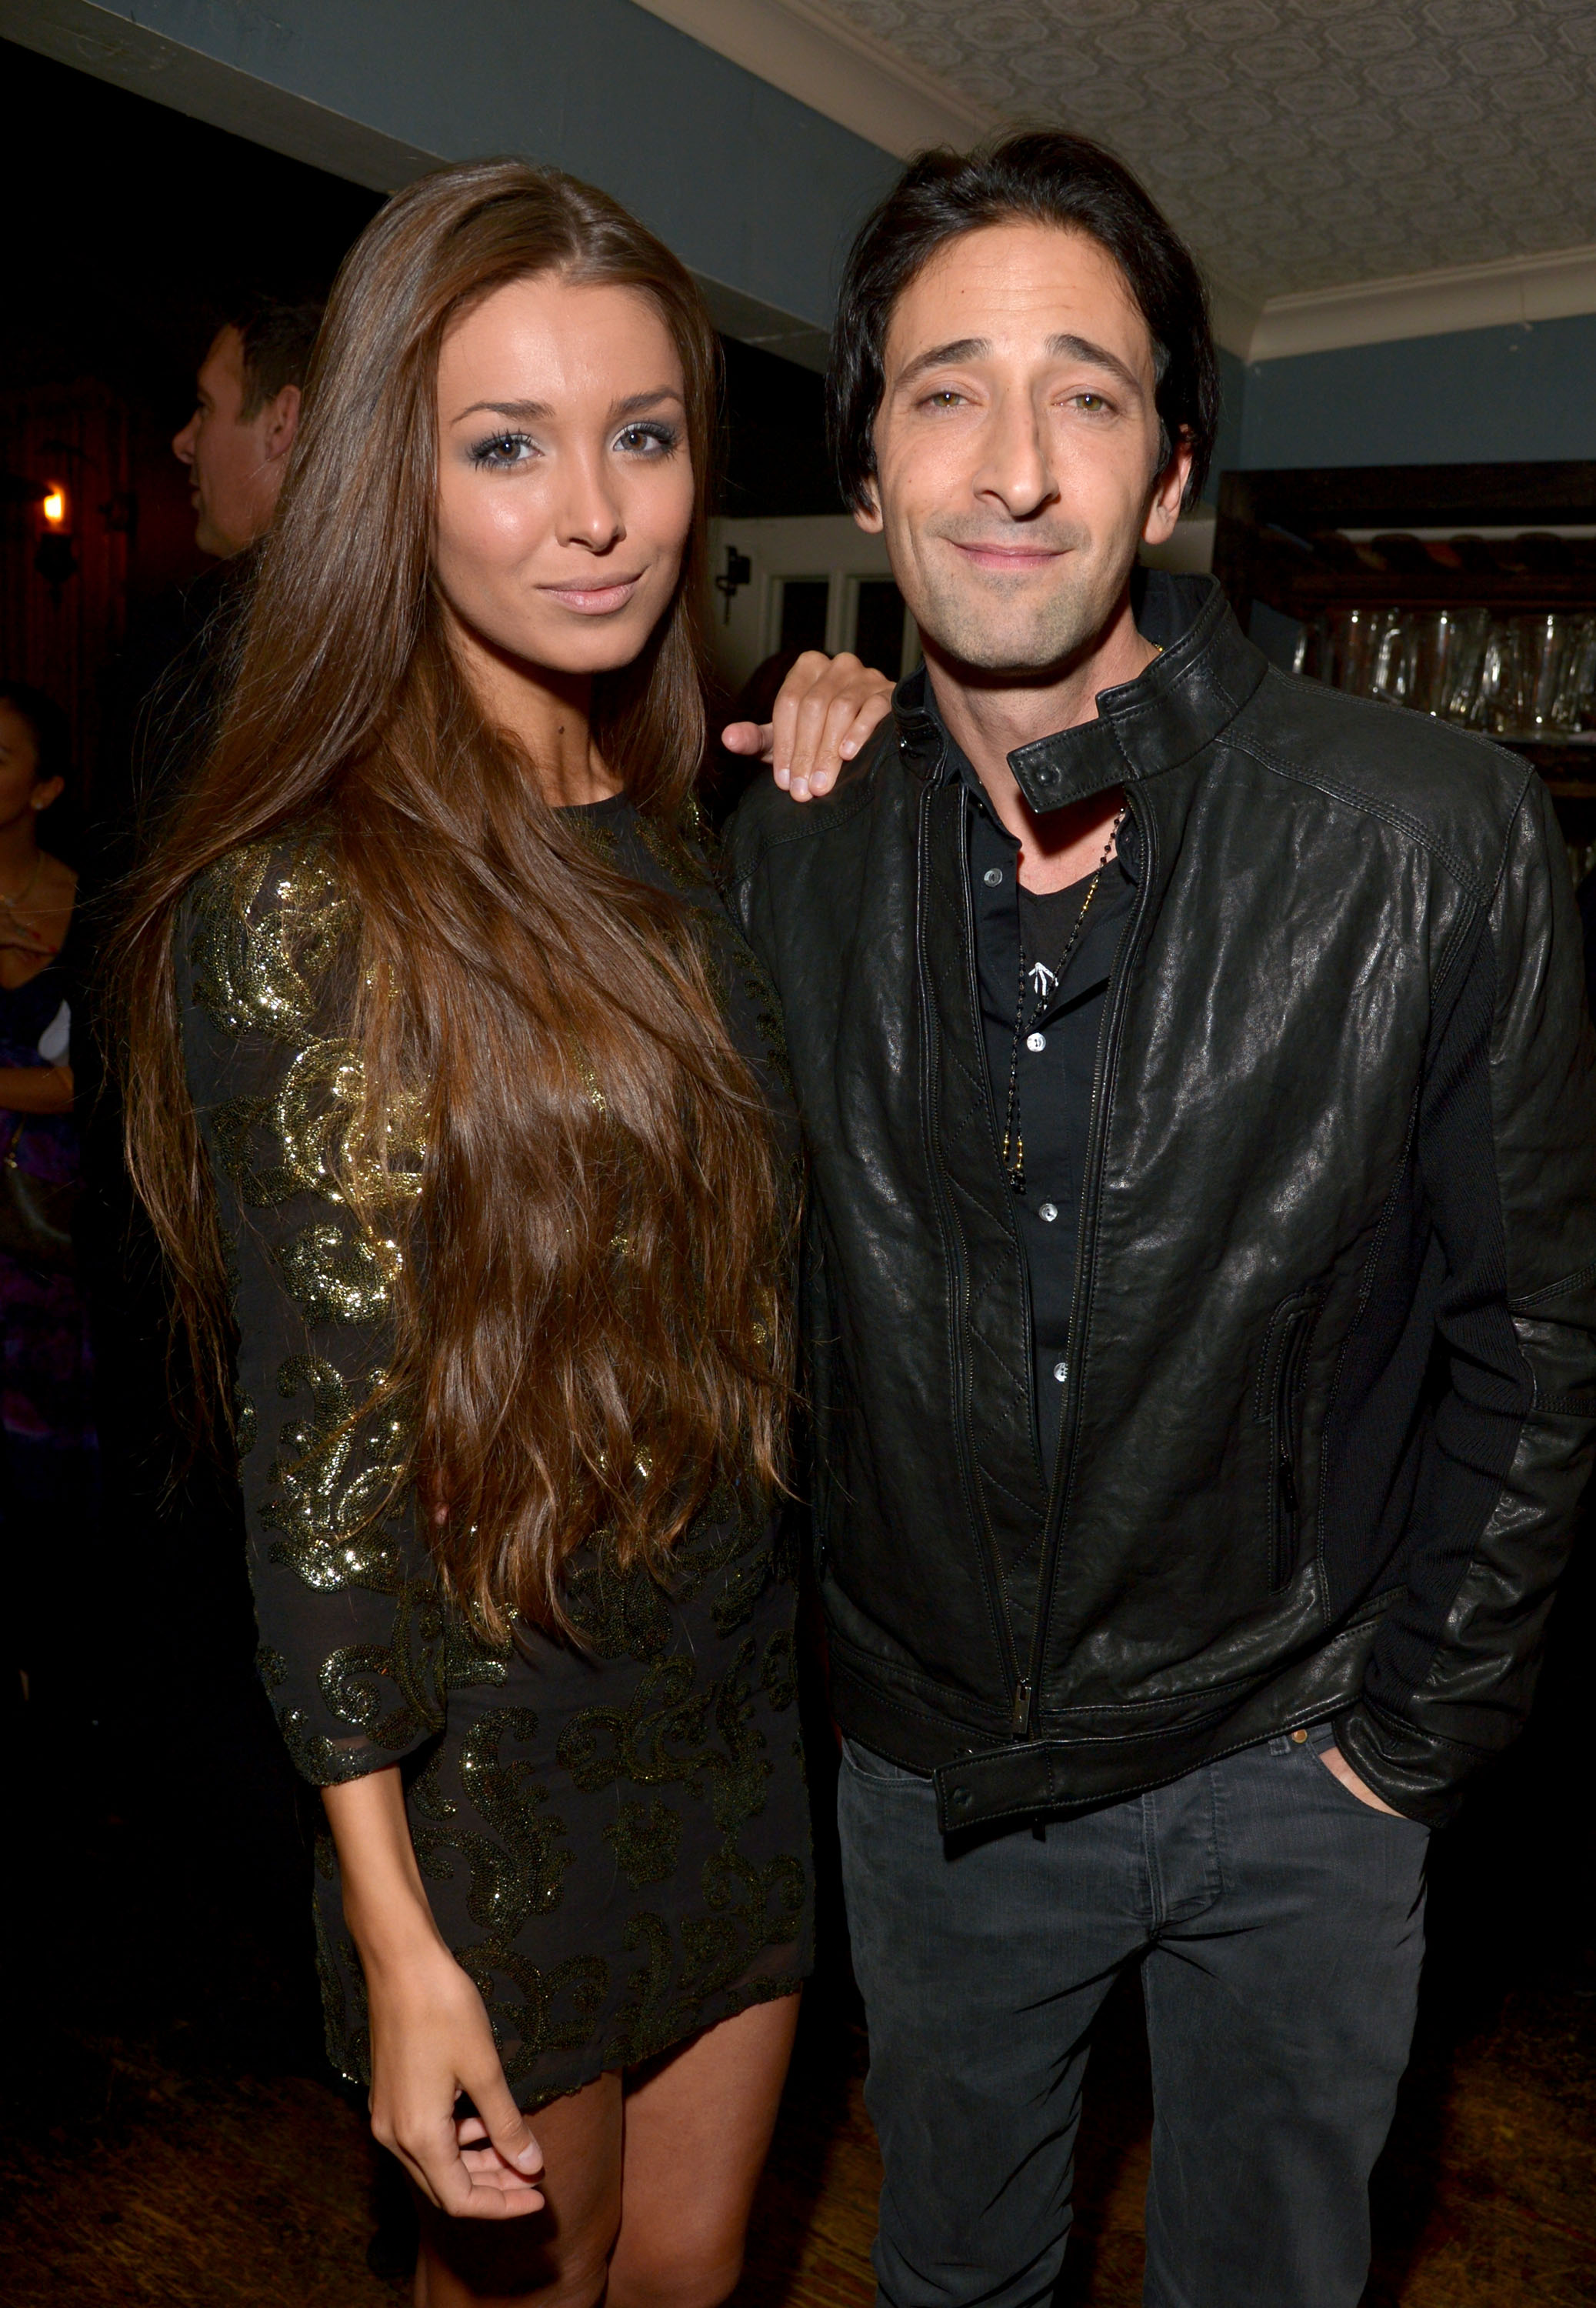 Adrien Brody arrived with Lara Lieto at the Les Misérables event in LA on Wednesday night.